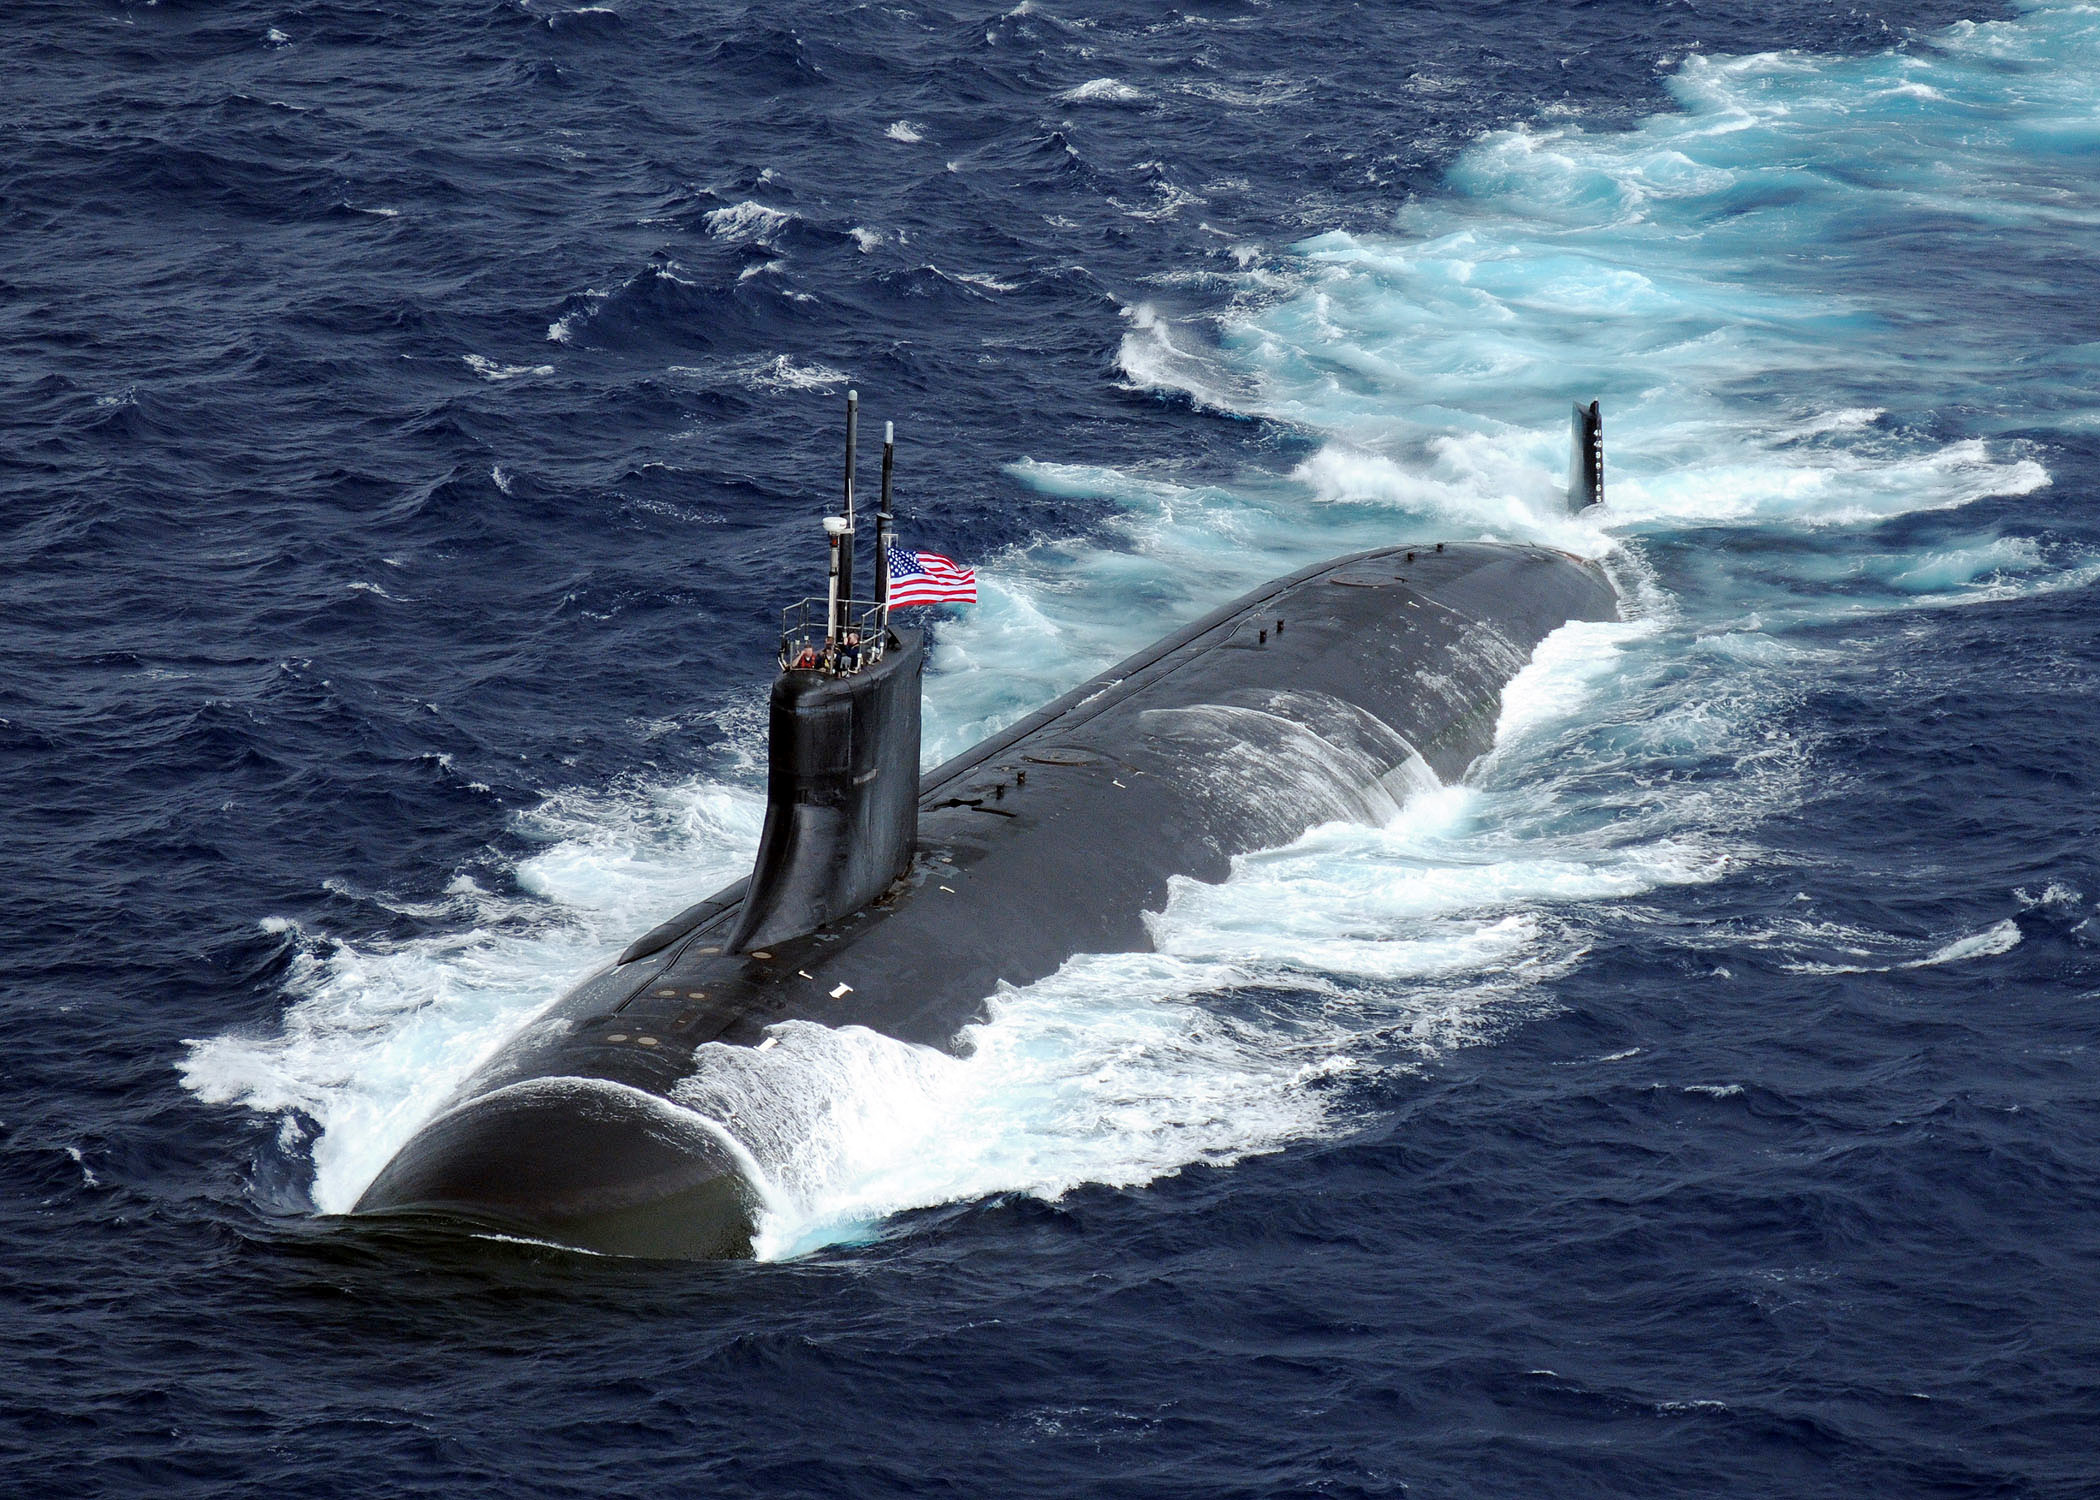 US_Navy_091117-N-6720T-373_The_Seawolf-class_attack_submarine_USS_Connecticut_(SSN_22)_is_underway_i